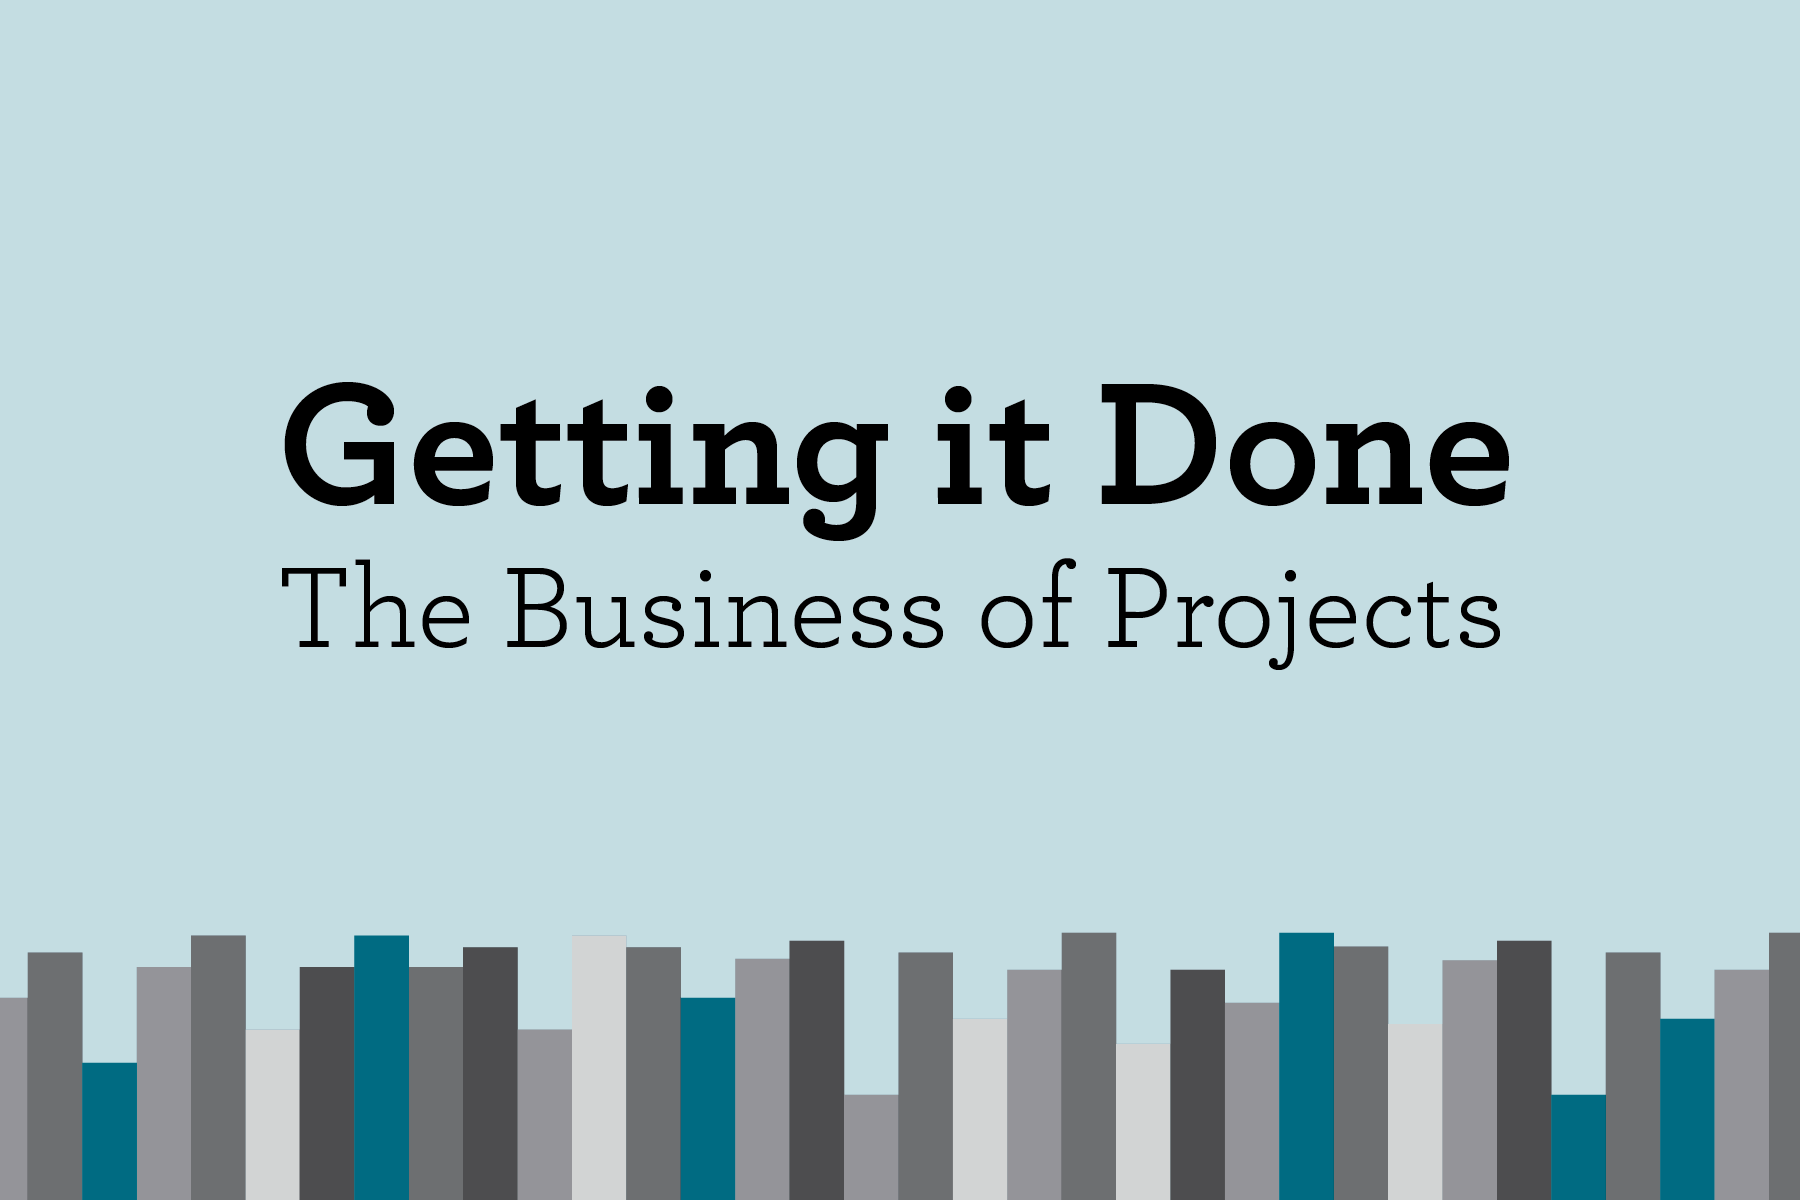 This page is intended only for participants of Getting it Done: The Business of Projects